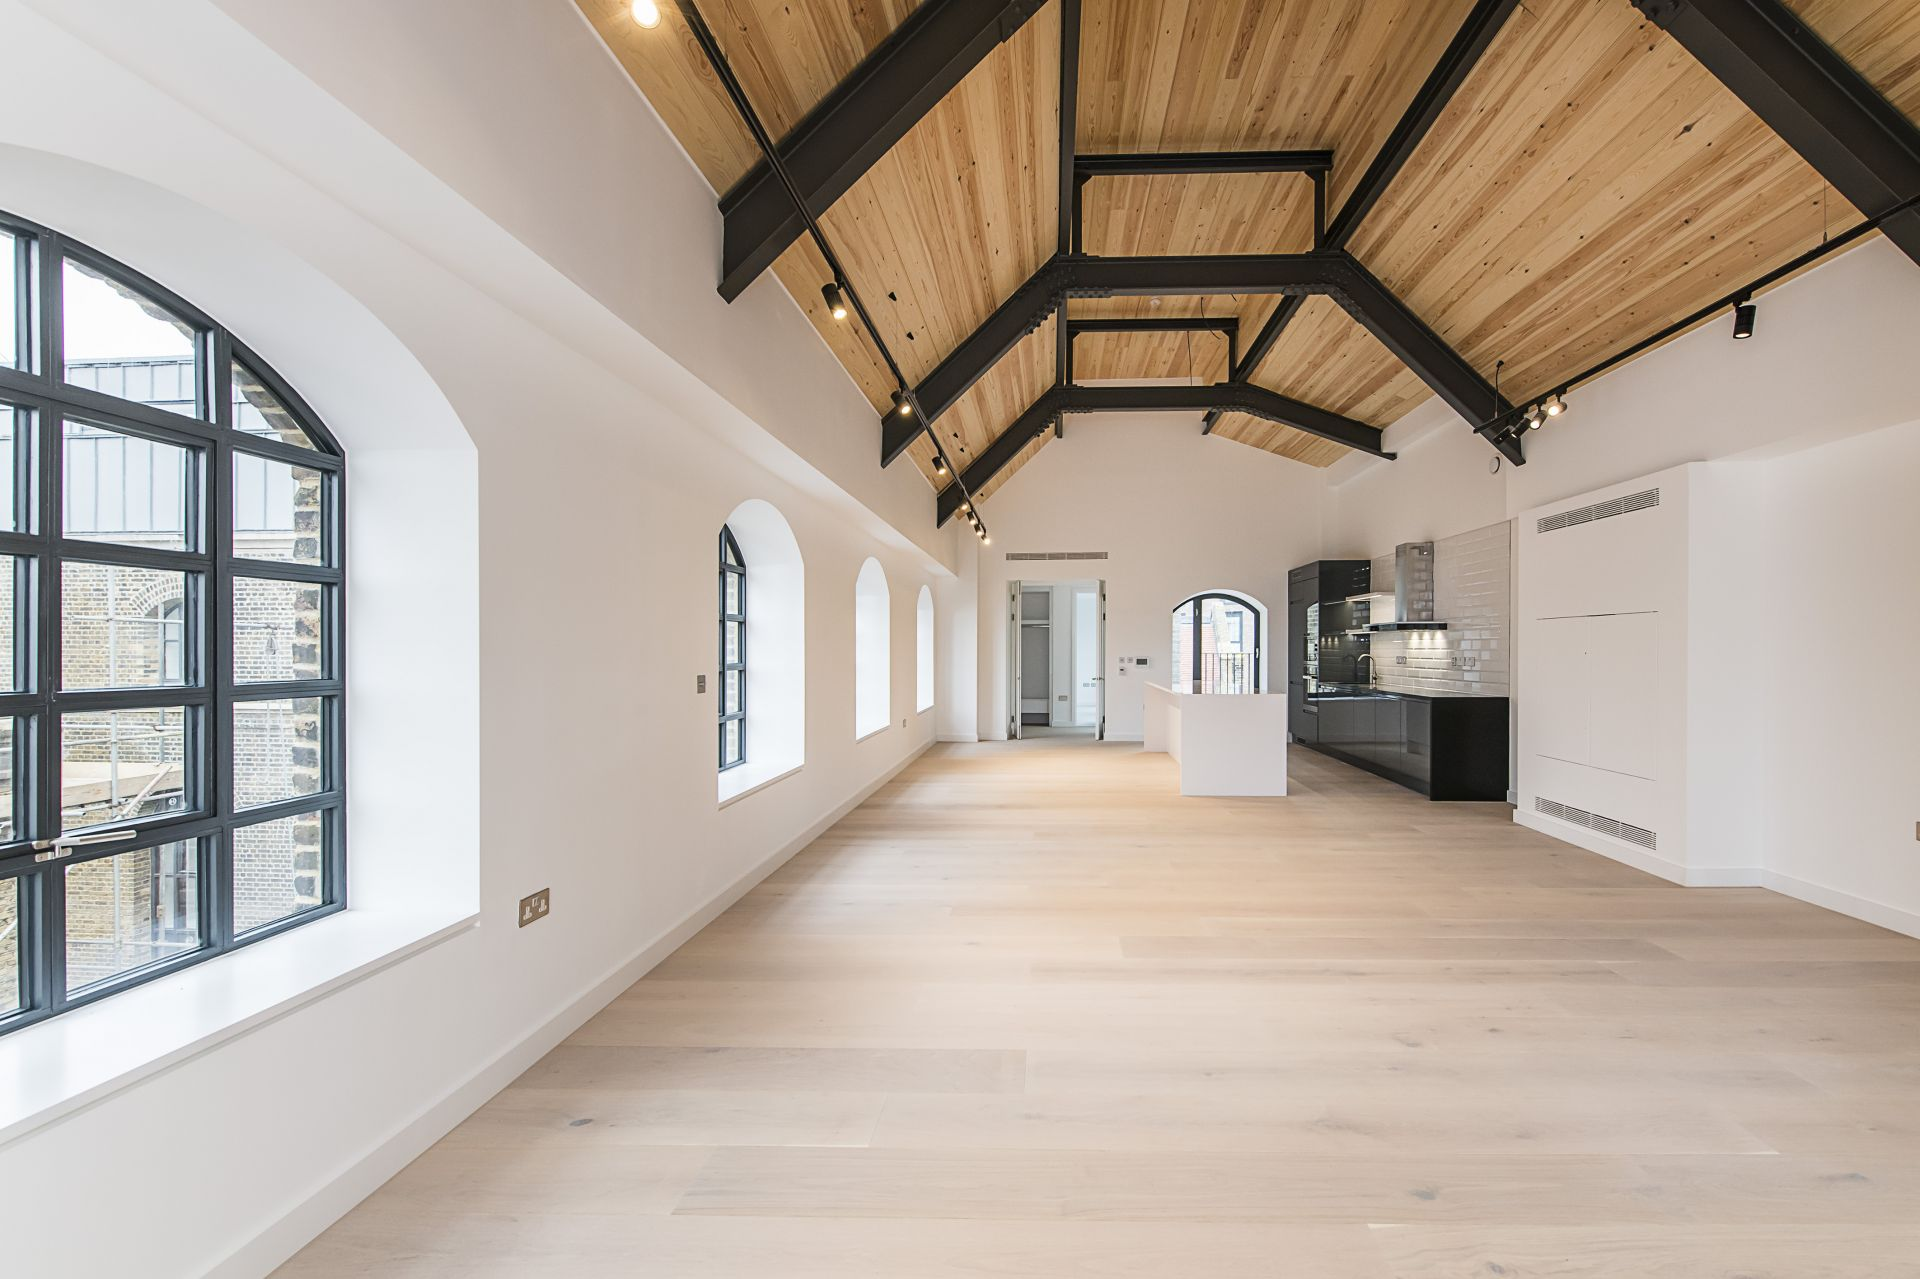 4 Bedroom Flat for sale on SW18 | Property Search ...